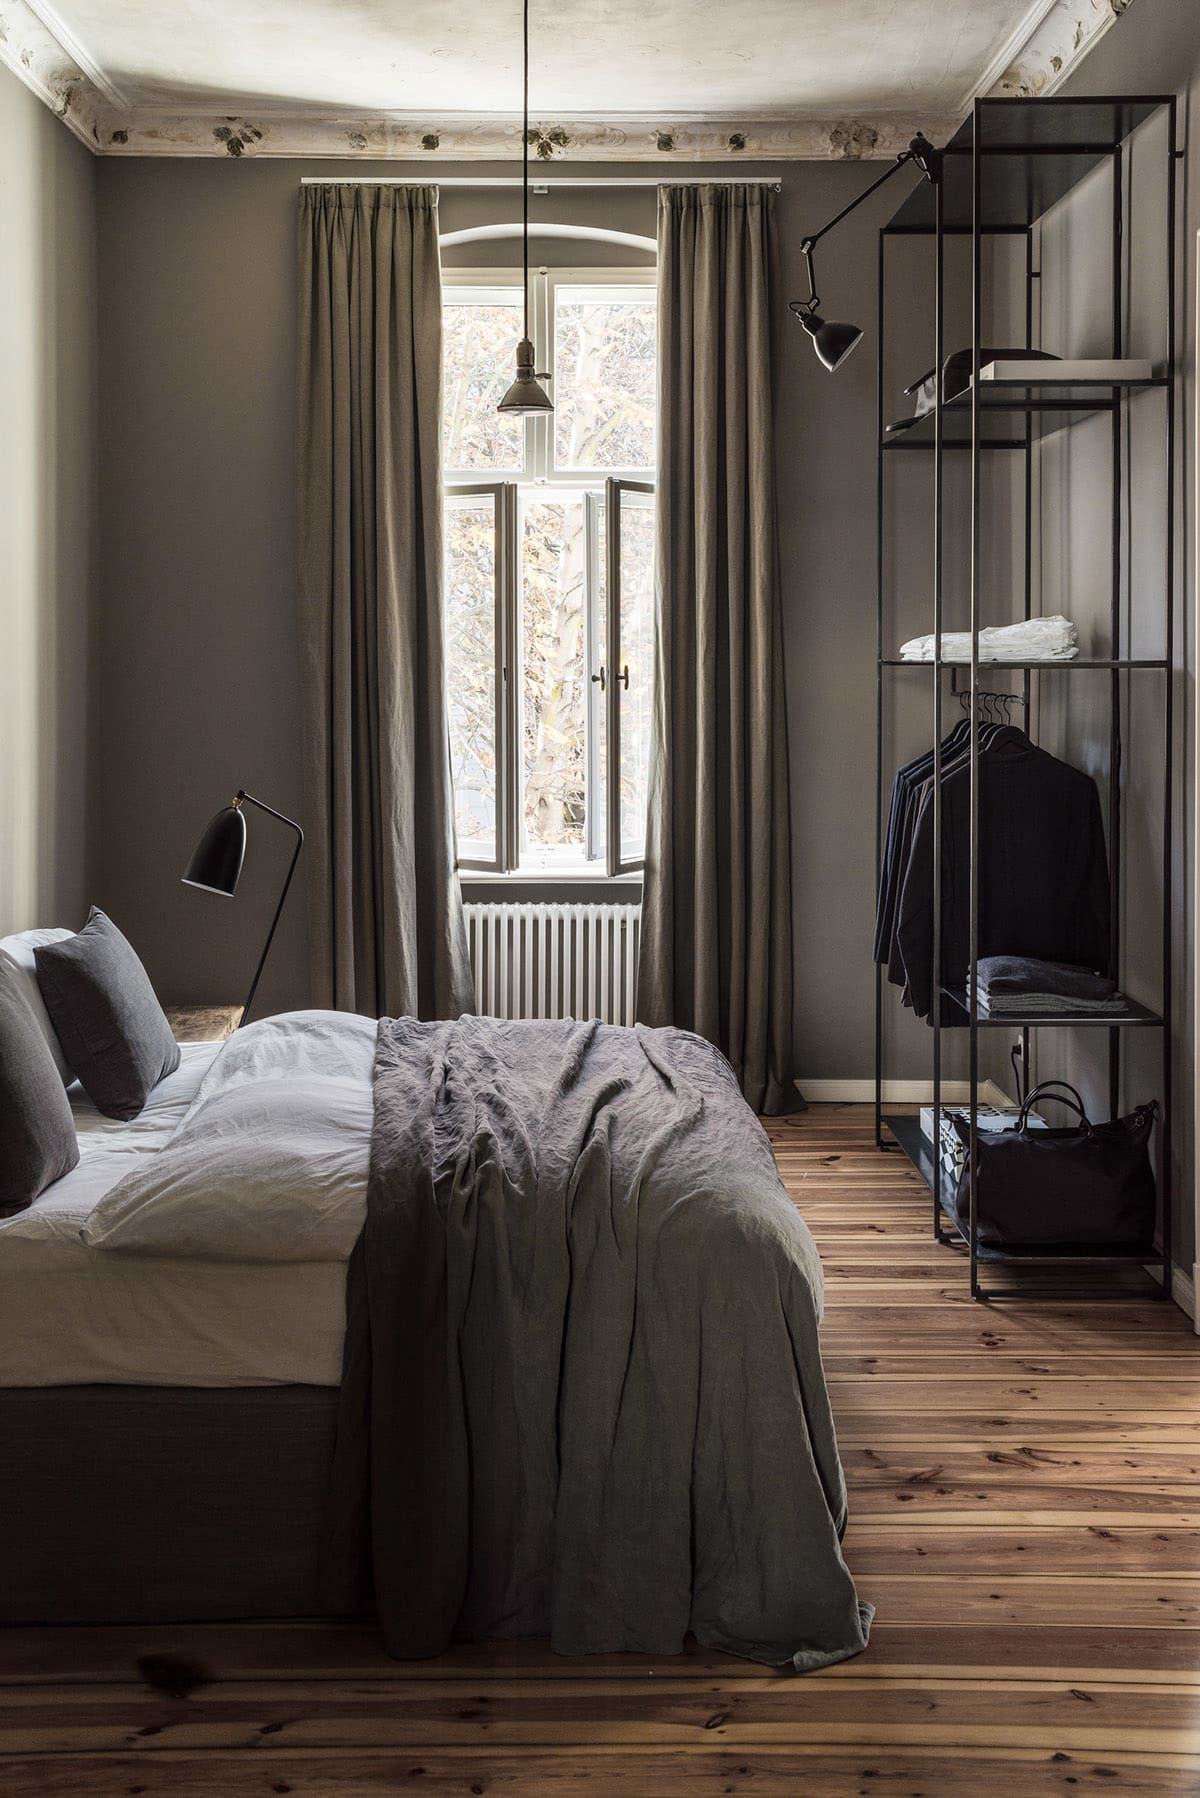 24 Examples Of Minimal Interior Design 24  A rOOm WiTH a